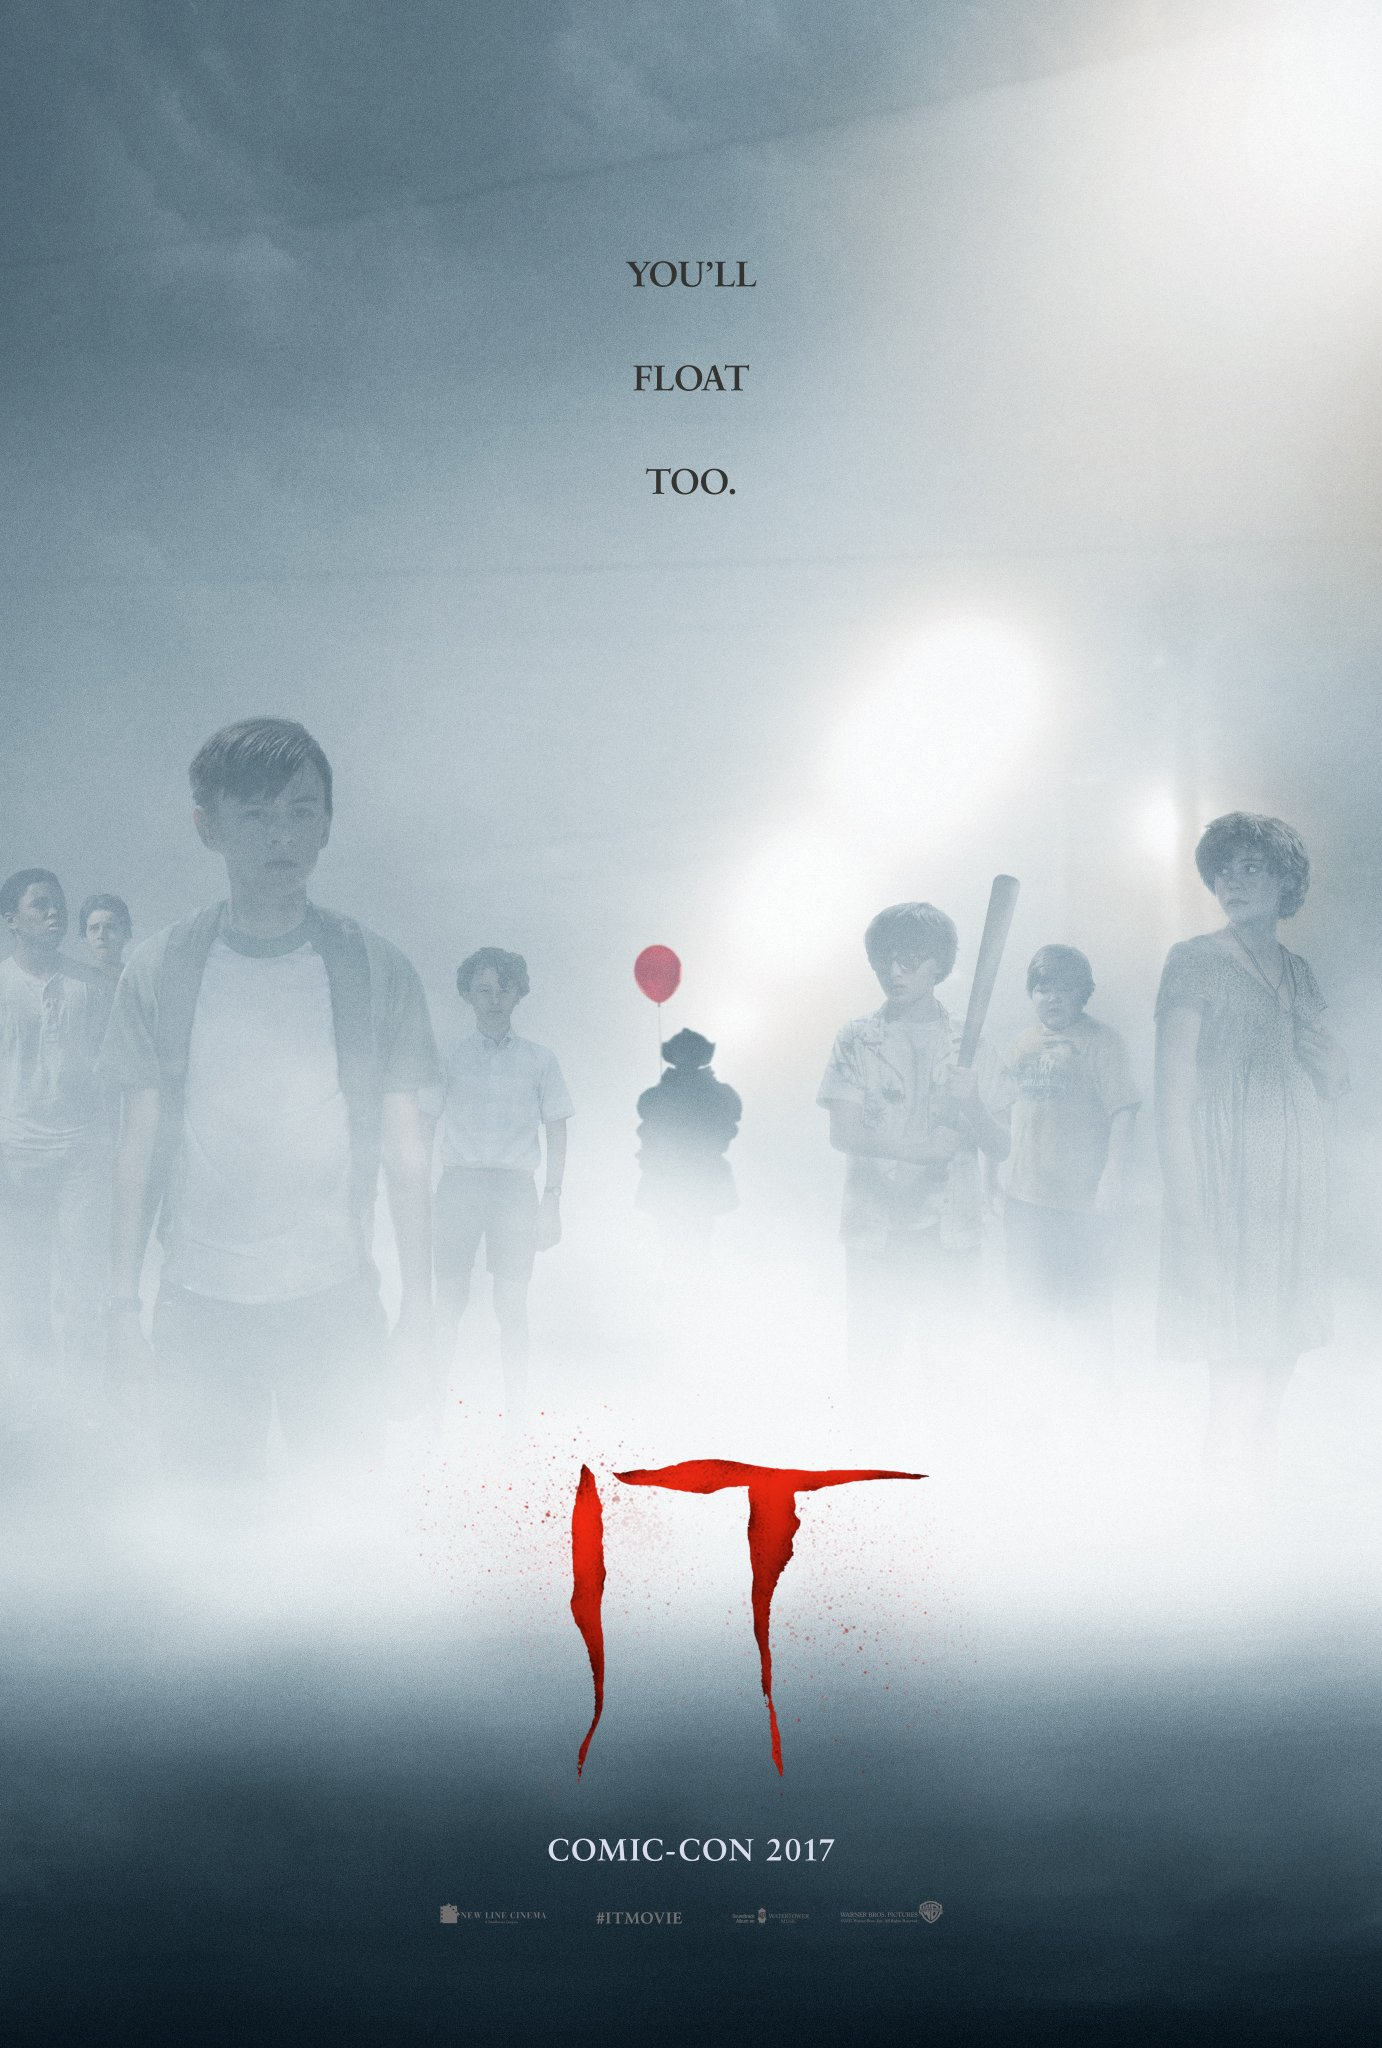 pennywise-the-clown-haunts-the-loser-club-in-new-poster-for-it-youll-float-too1.jpg